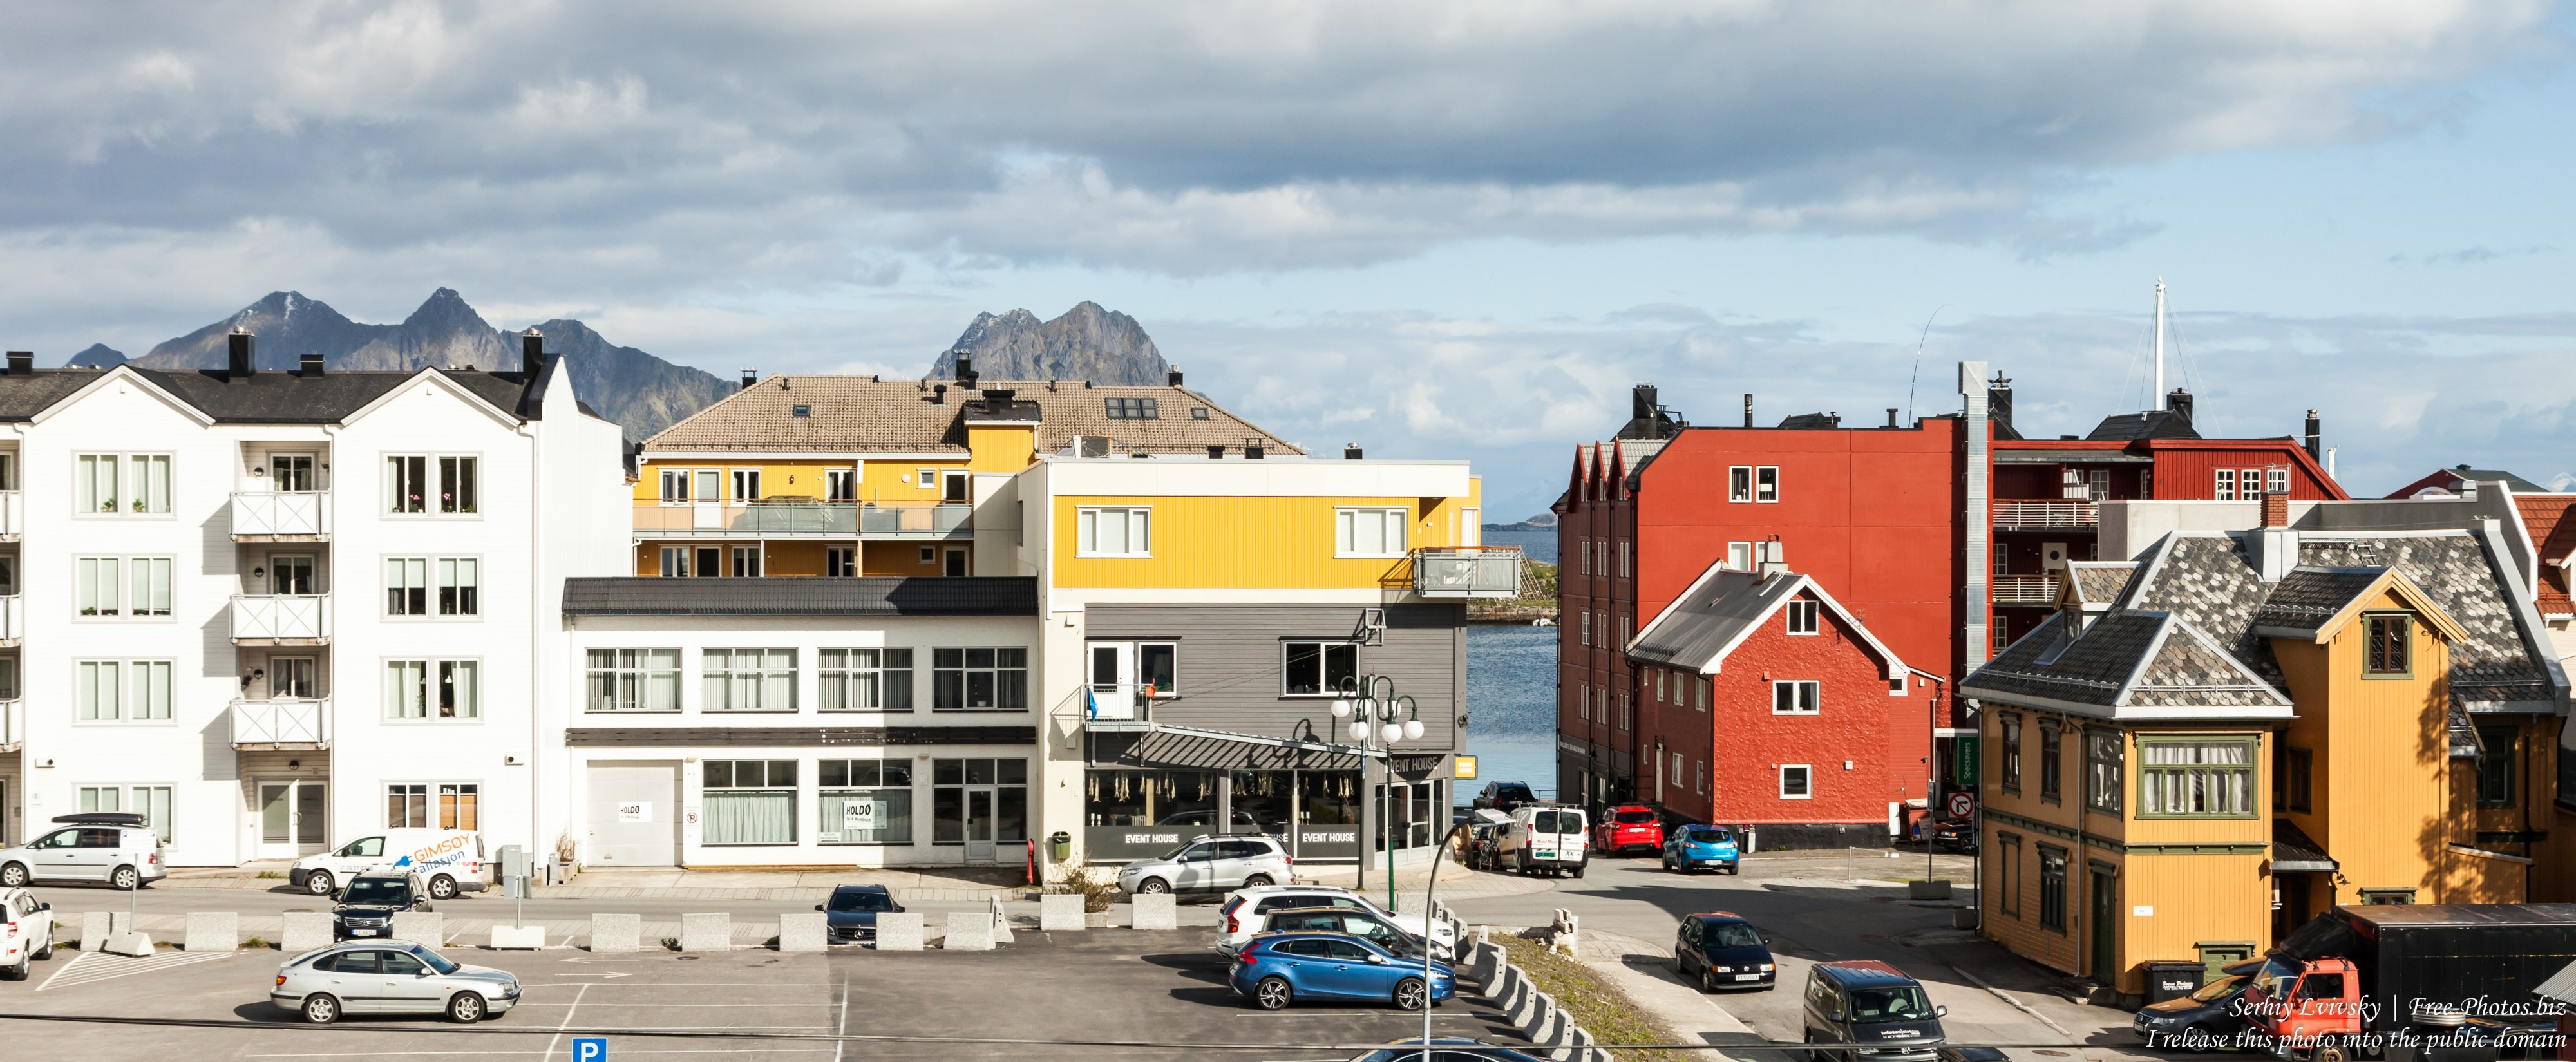 Svolvaer, Lofoten, Norway photographed in June 2018 by Serhiy Lvivsky, picture 20